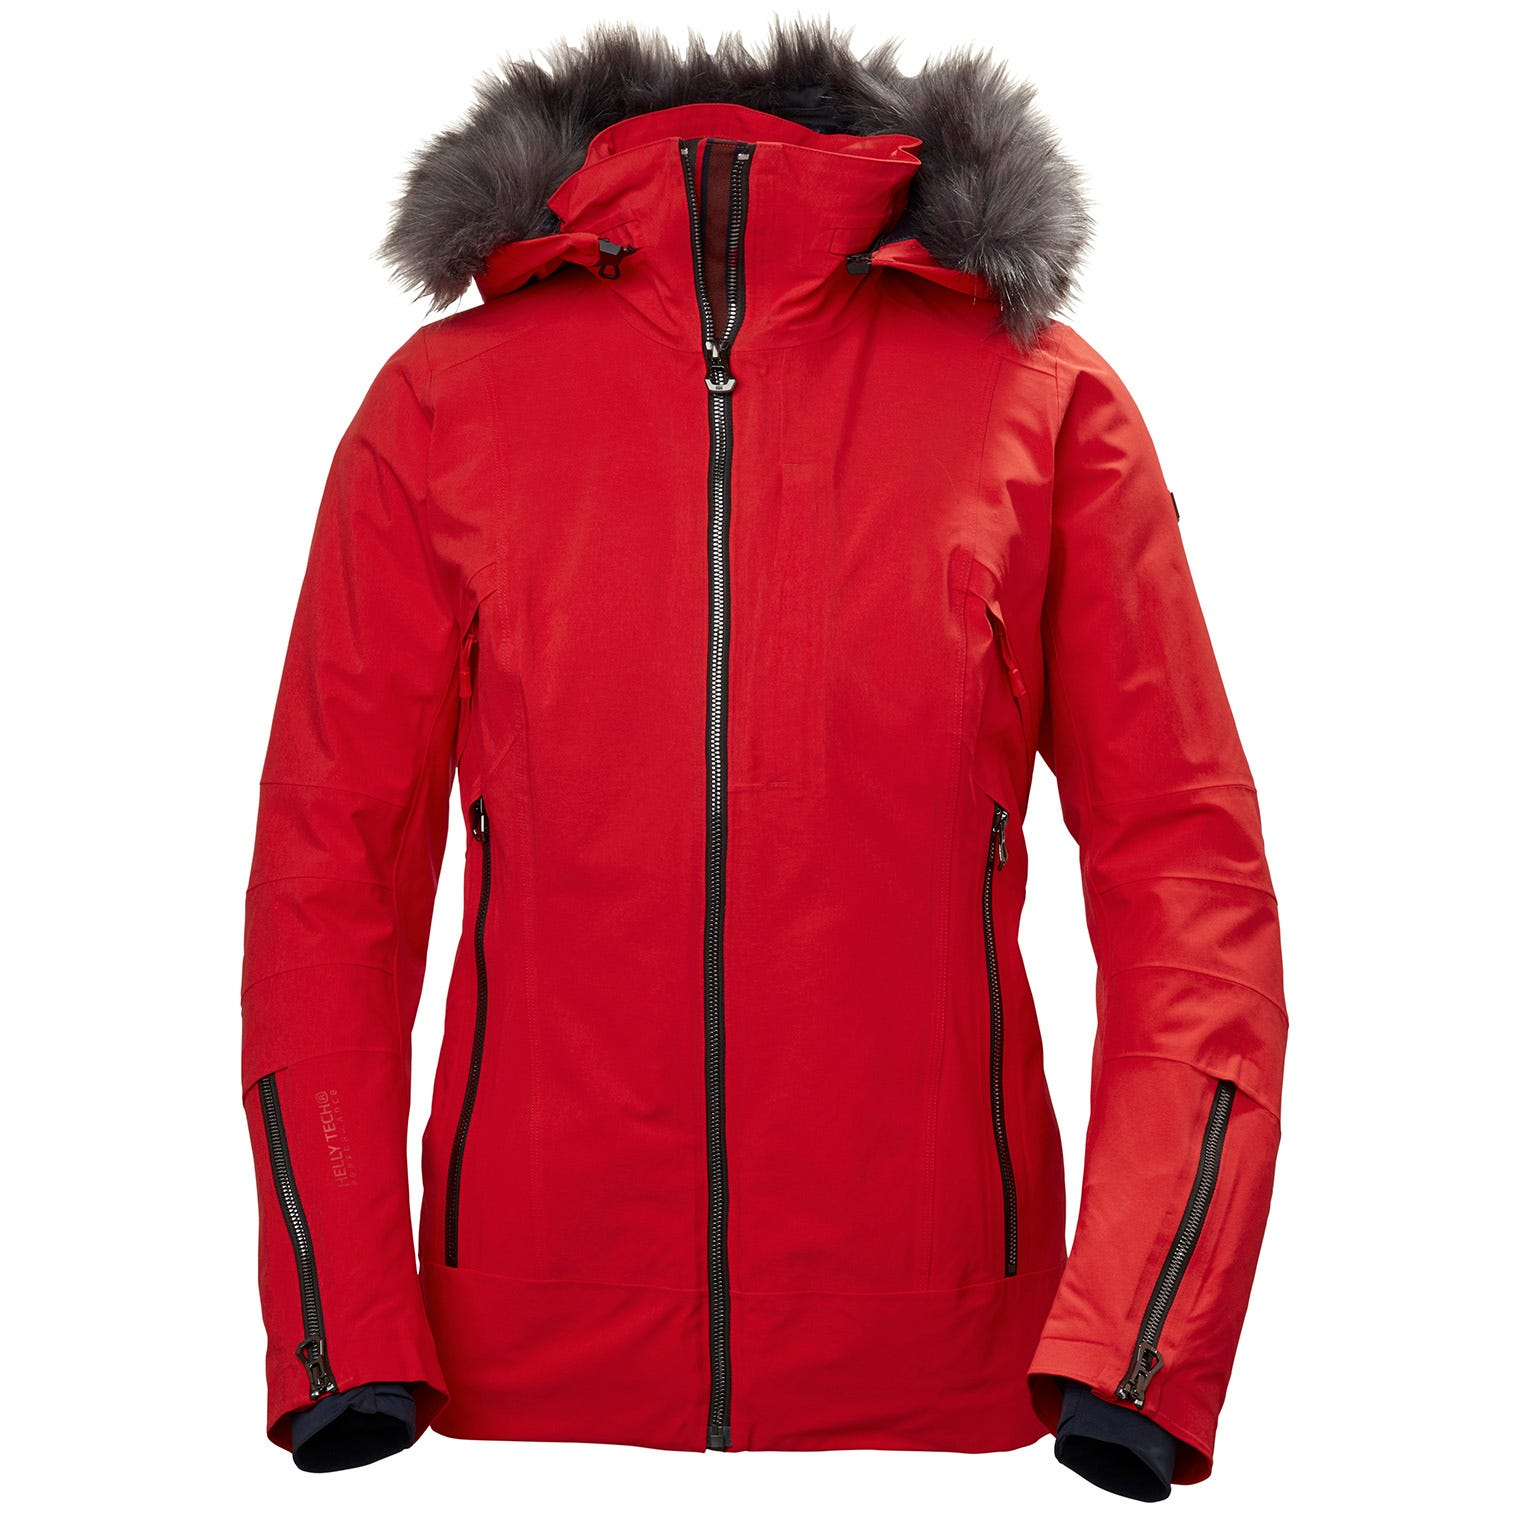 Womens Snowdancer Ski Jacket With Faux Fur Hood | Helly Hansen Womens Red XS